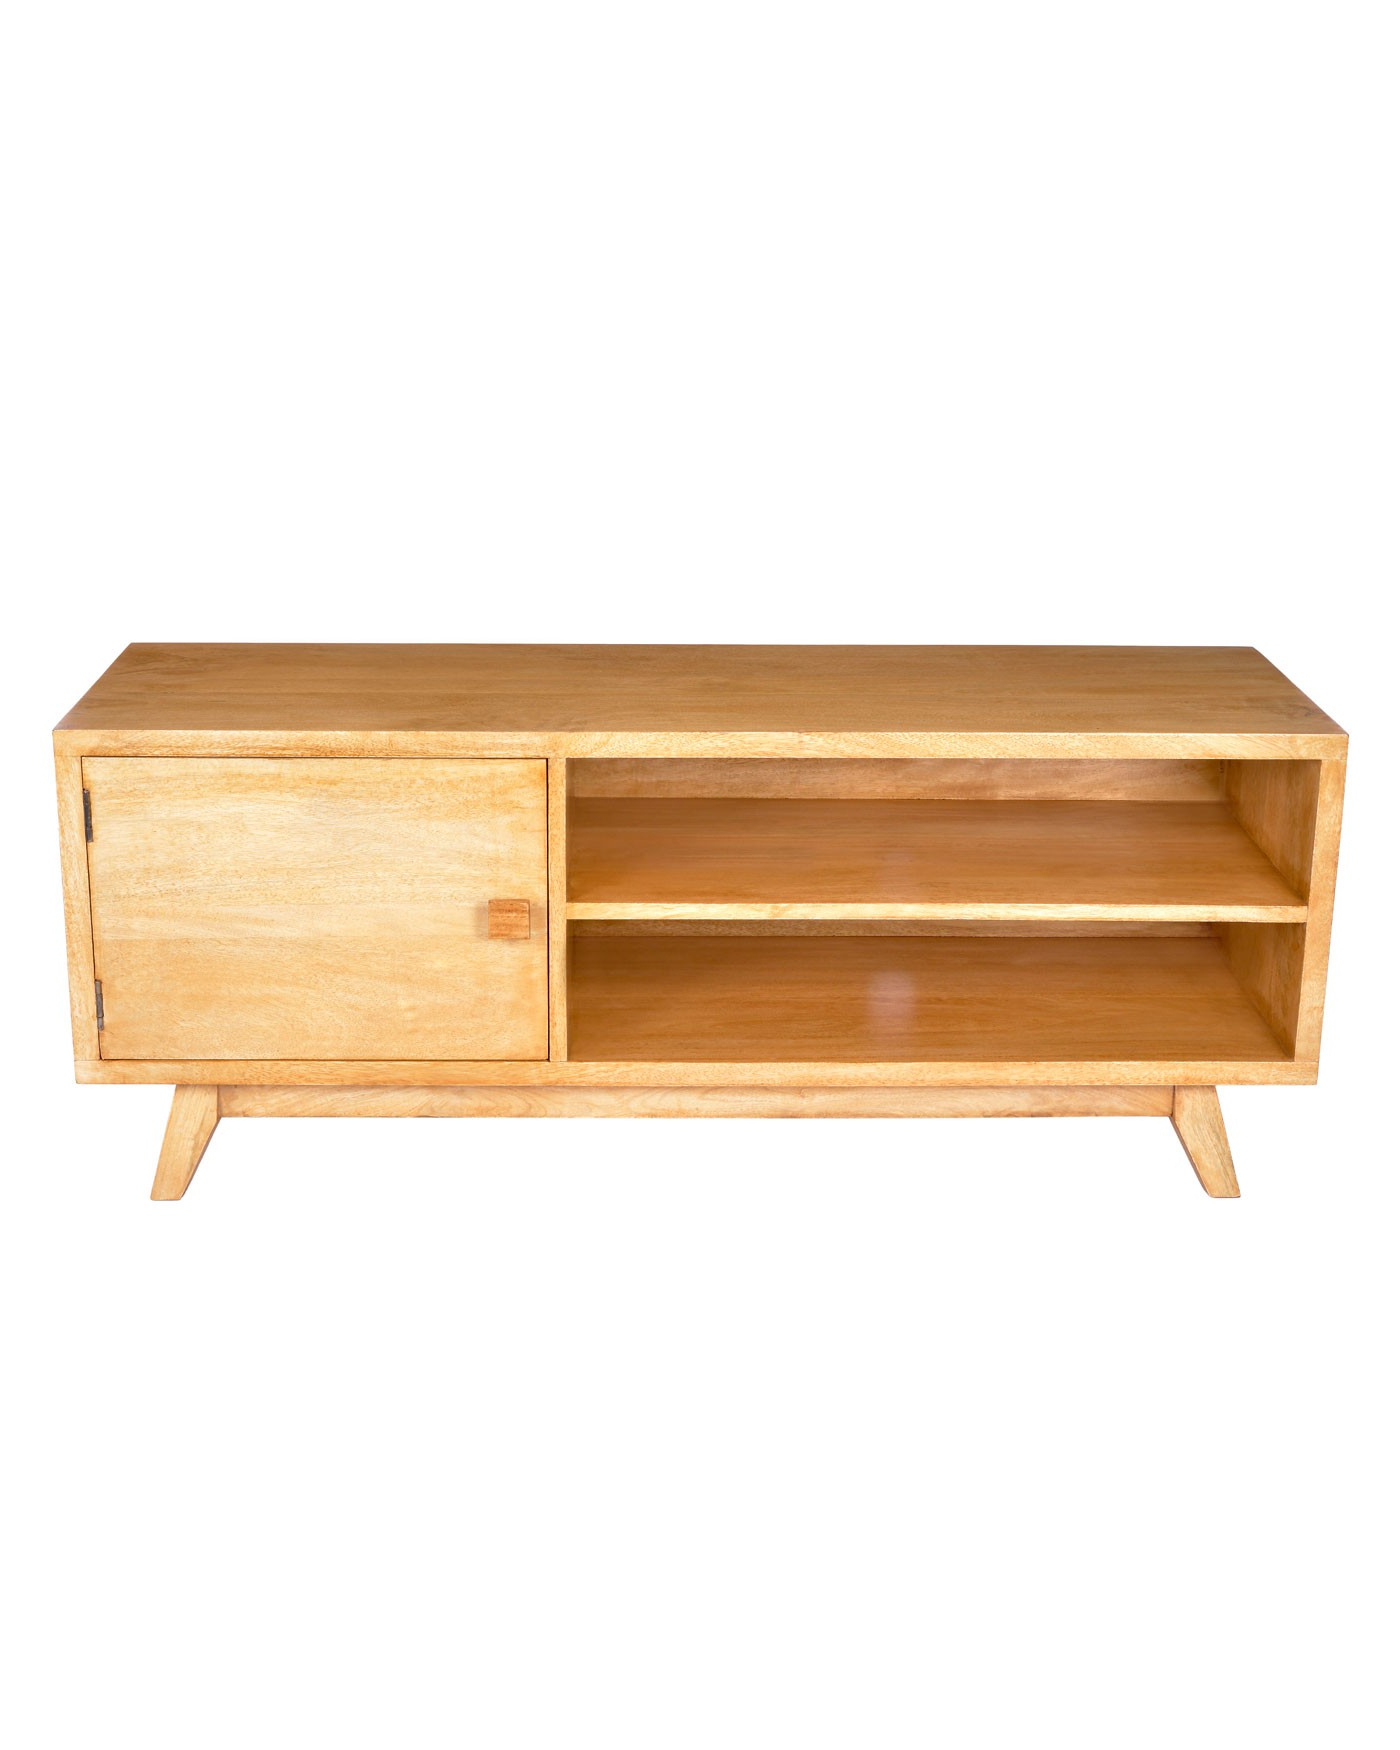 [%Retro Wooden Tv Stand With Shelf 100% Solid Mango Wood Oak Shade Inside Widely Used Hard Wood Tv Stands|Hard Wood Tv Stands With Newest Retro Wooden Tv Stand With Shelf 100% Solid Mango Wood Oak Shade|Favorite Hard Wood Tv Stands Throughout Retro Wooden Tv Stand With Shelf 100% Solid Mango Wood Oak Shade|Recent Retro Wooden Tv Stand With Shelf 100% Solid Mango Wood Oak Shade Regarding Hard Wood Tv Stands%] (View 2 of 20)